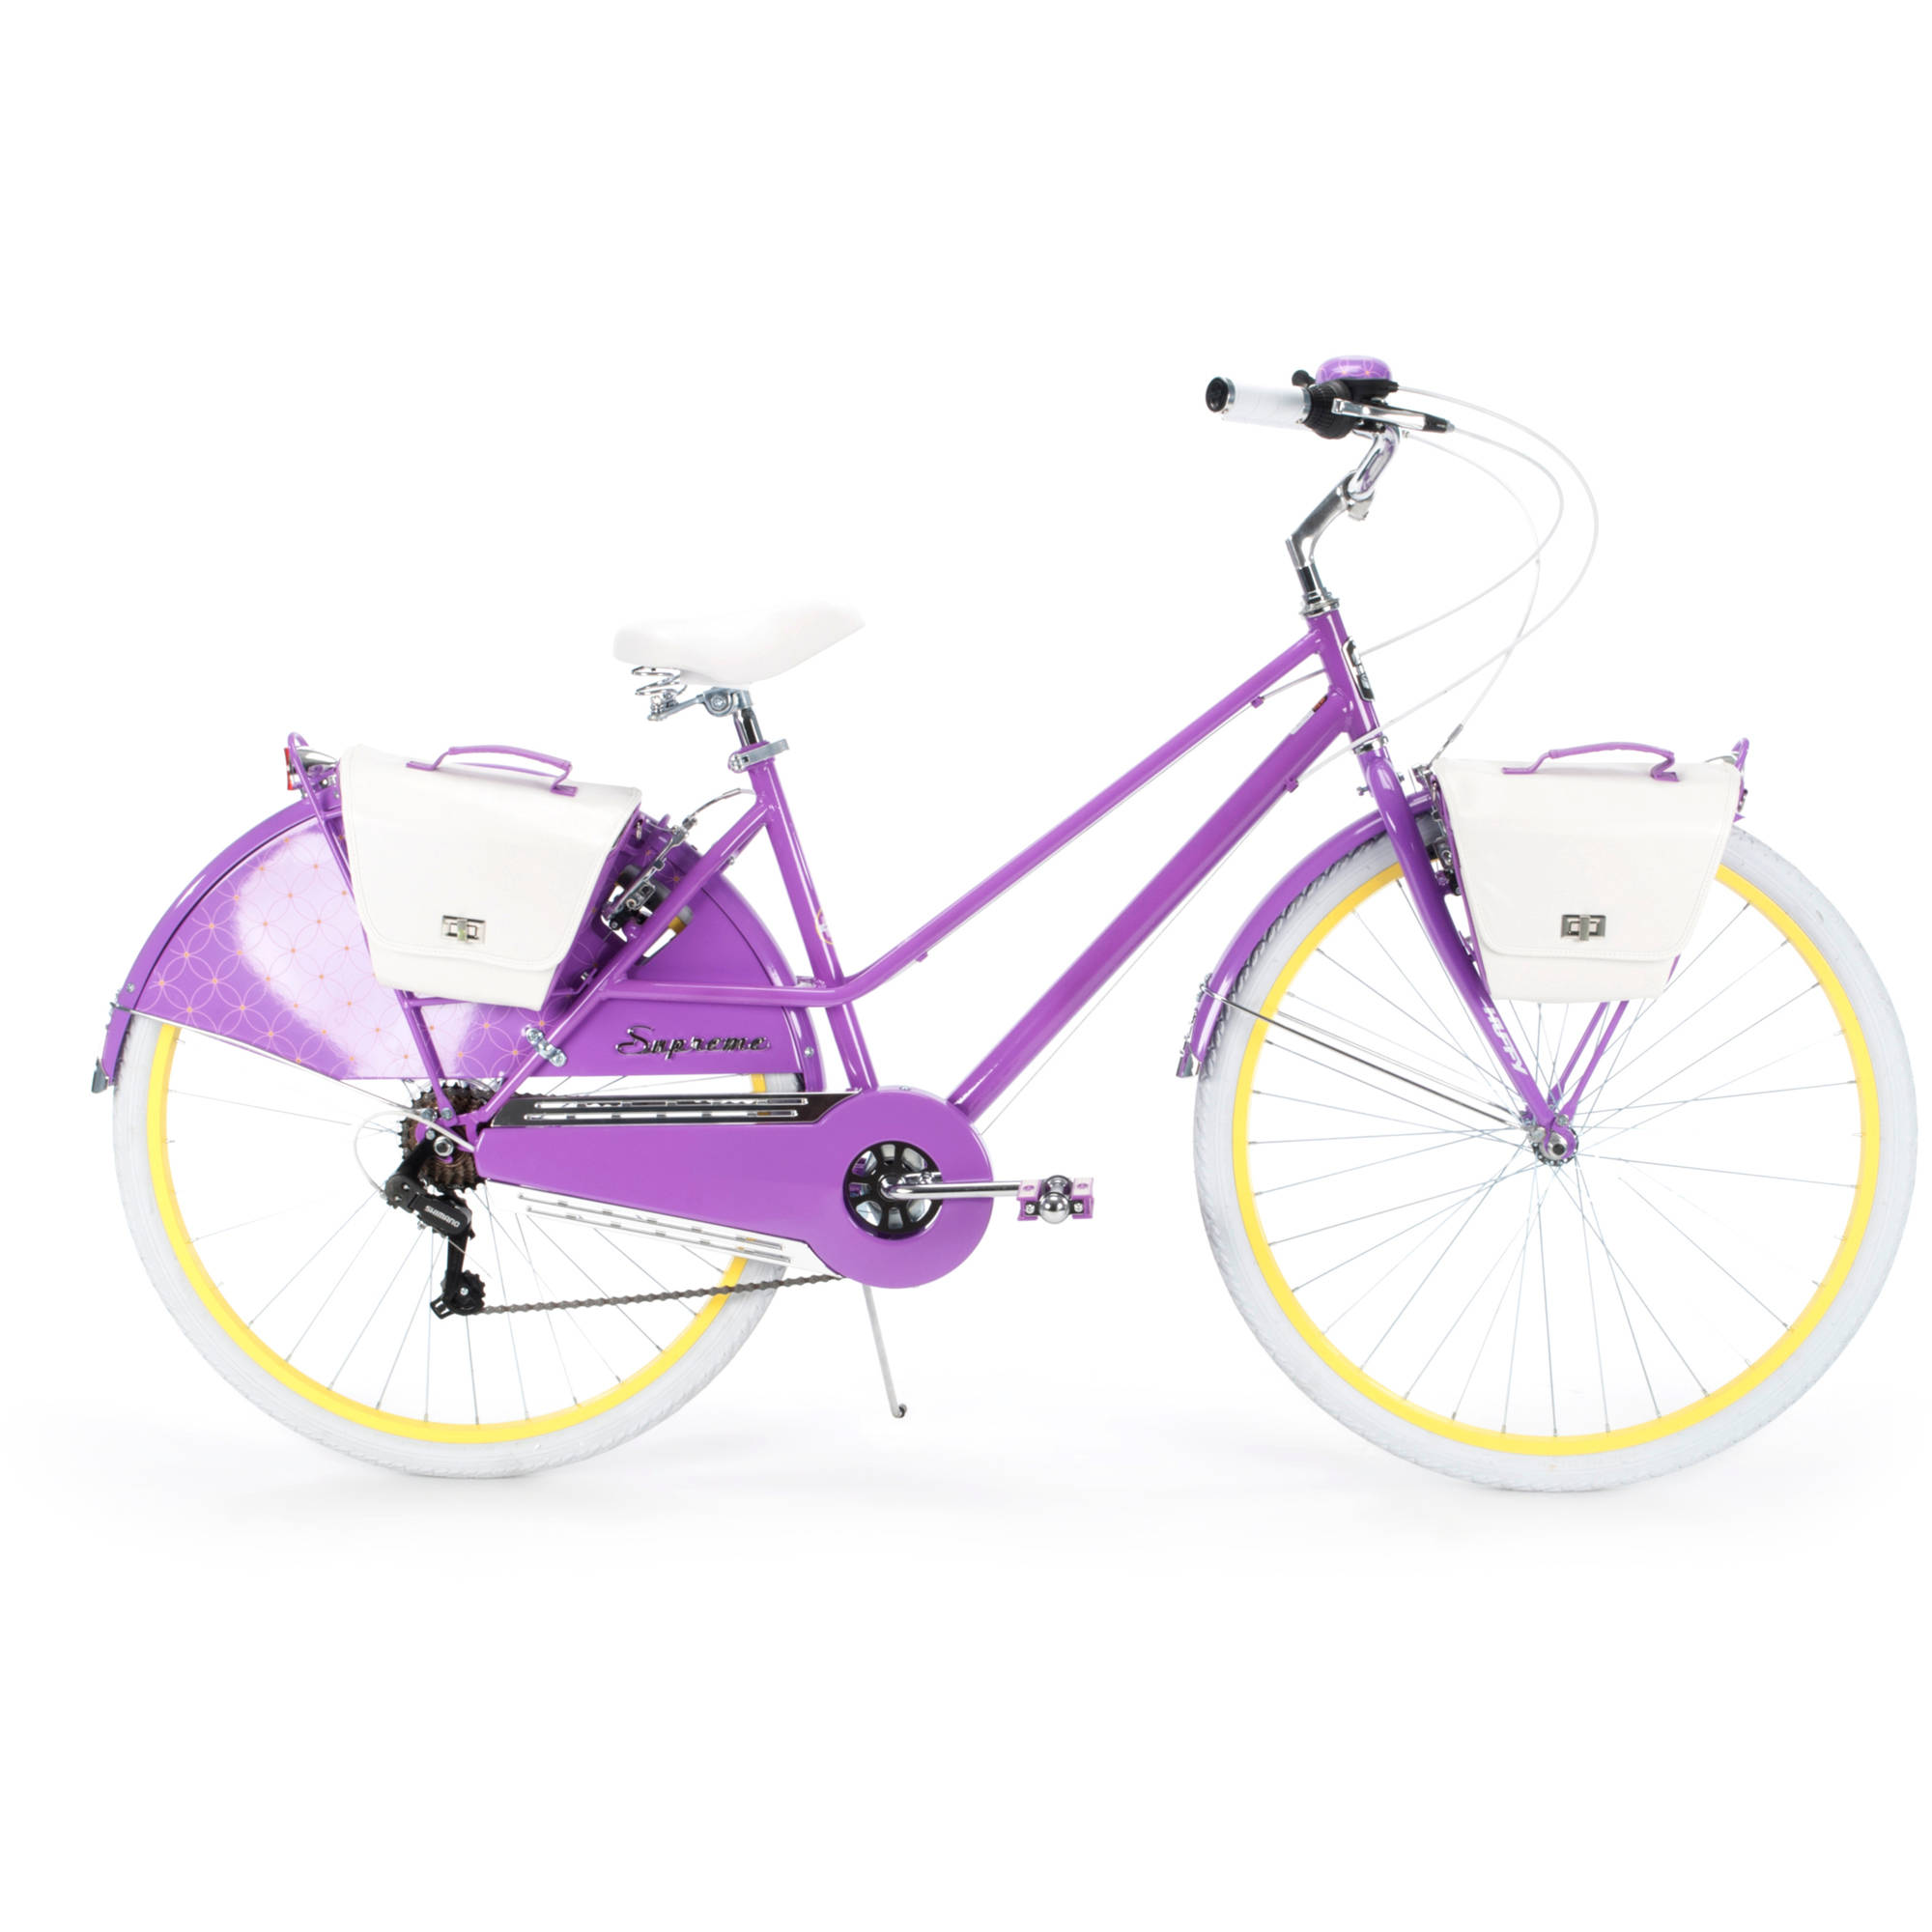 700c Huffy Supreme Women's Cruiser Bike, Purple